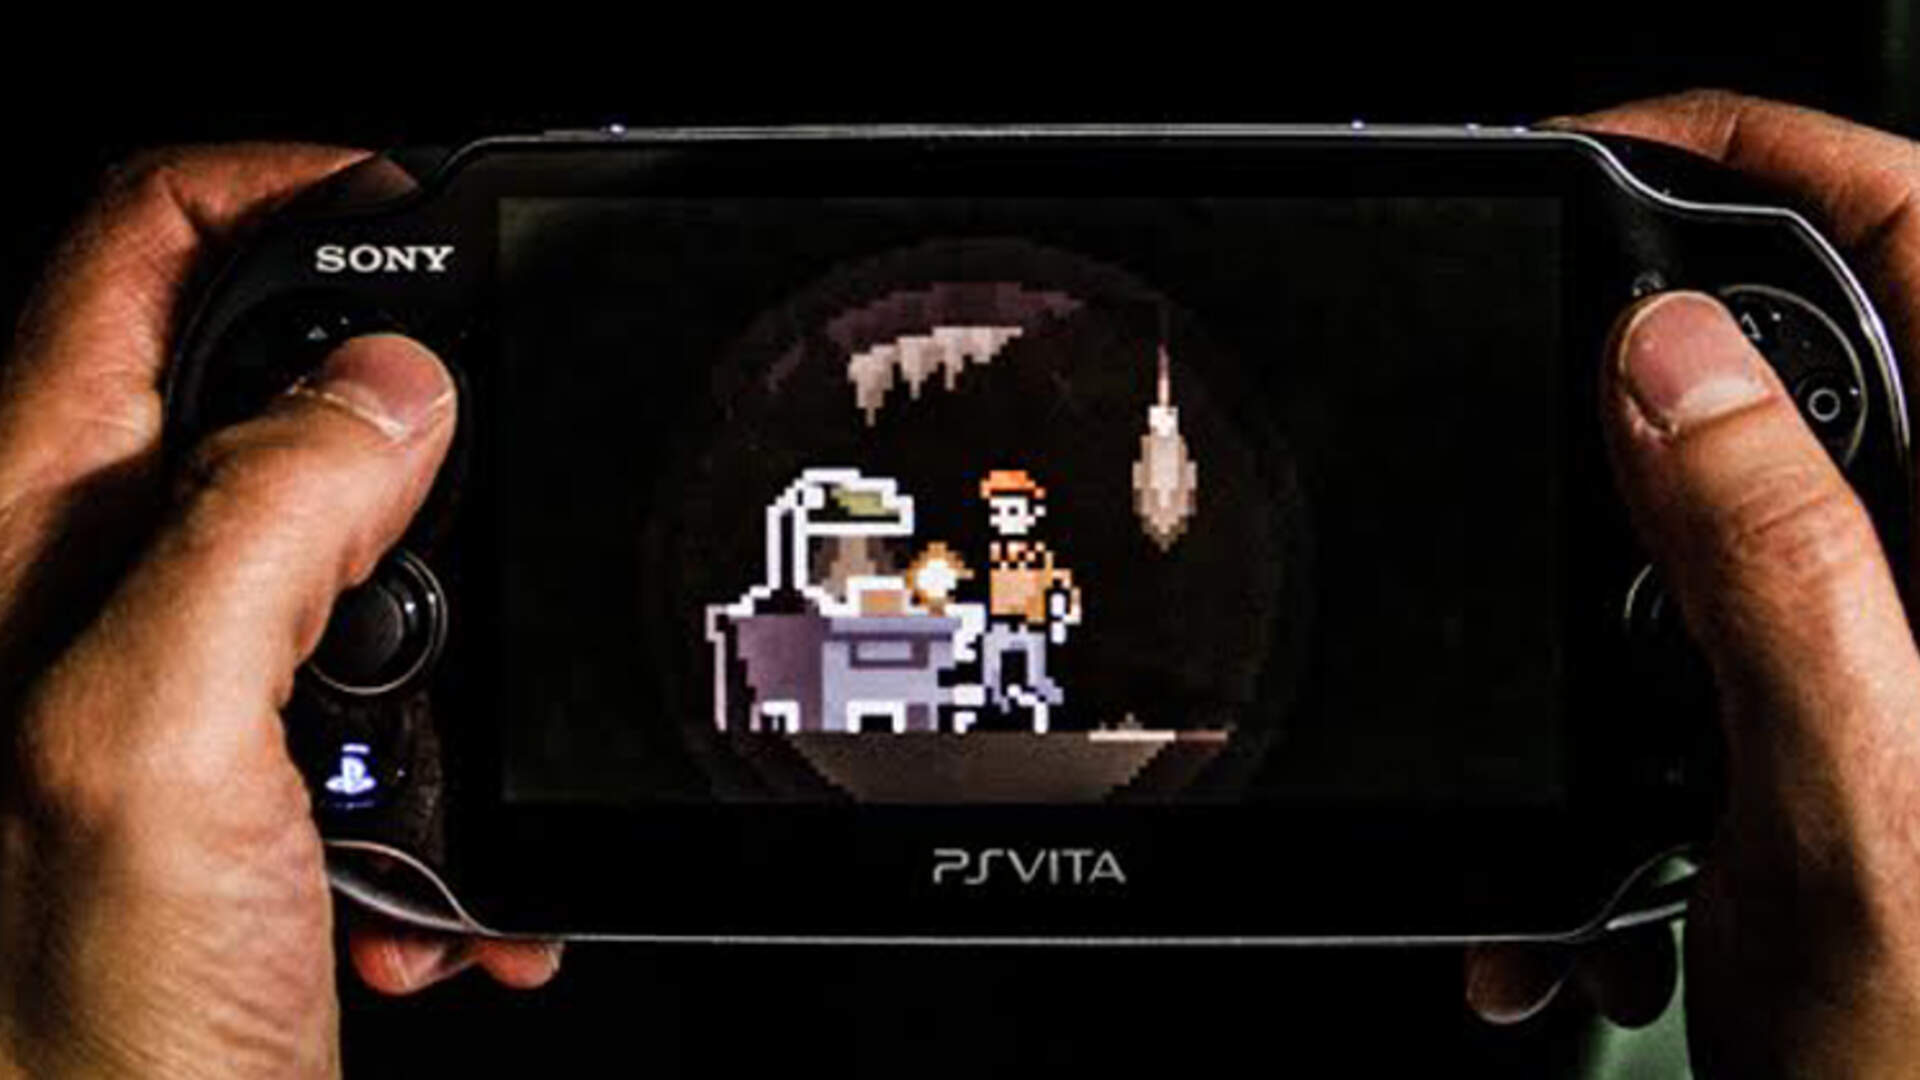 The Fear of Losing Handheld Horror Games